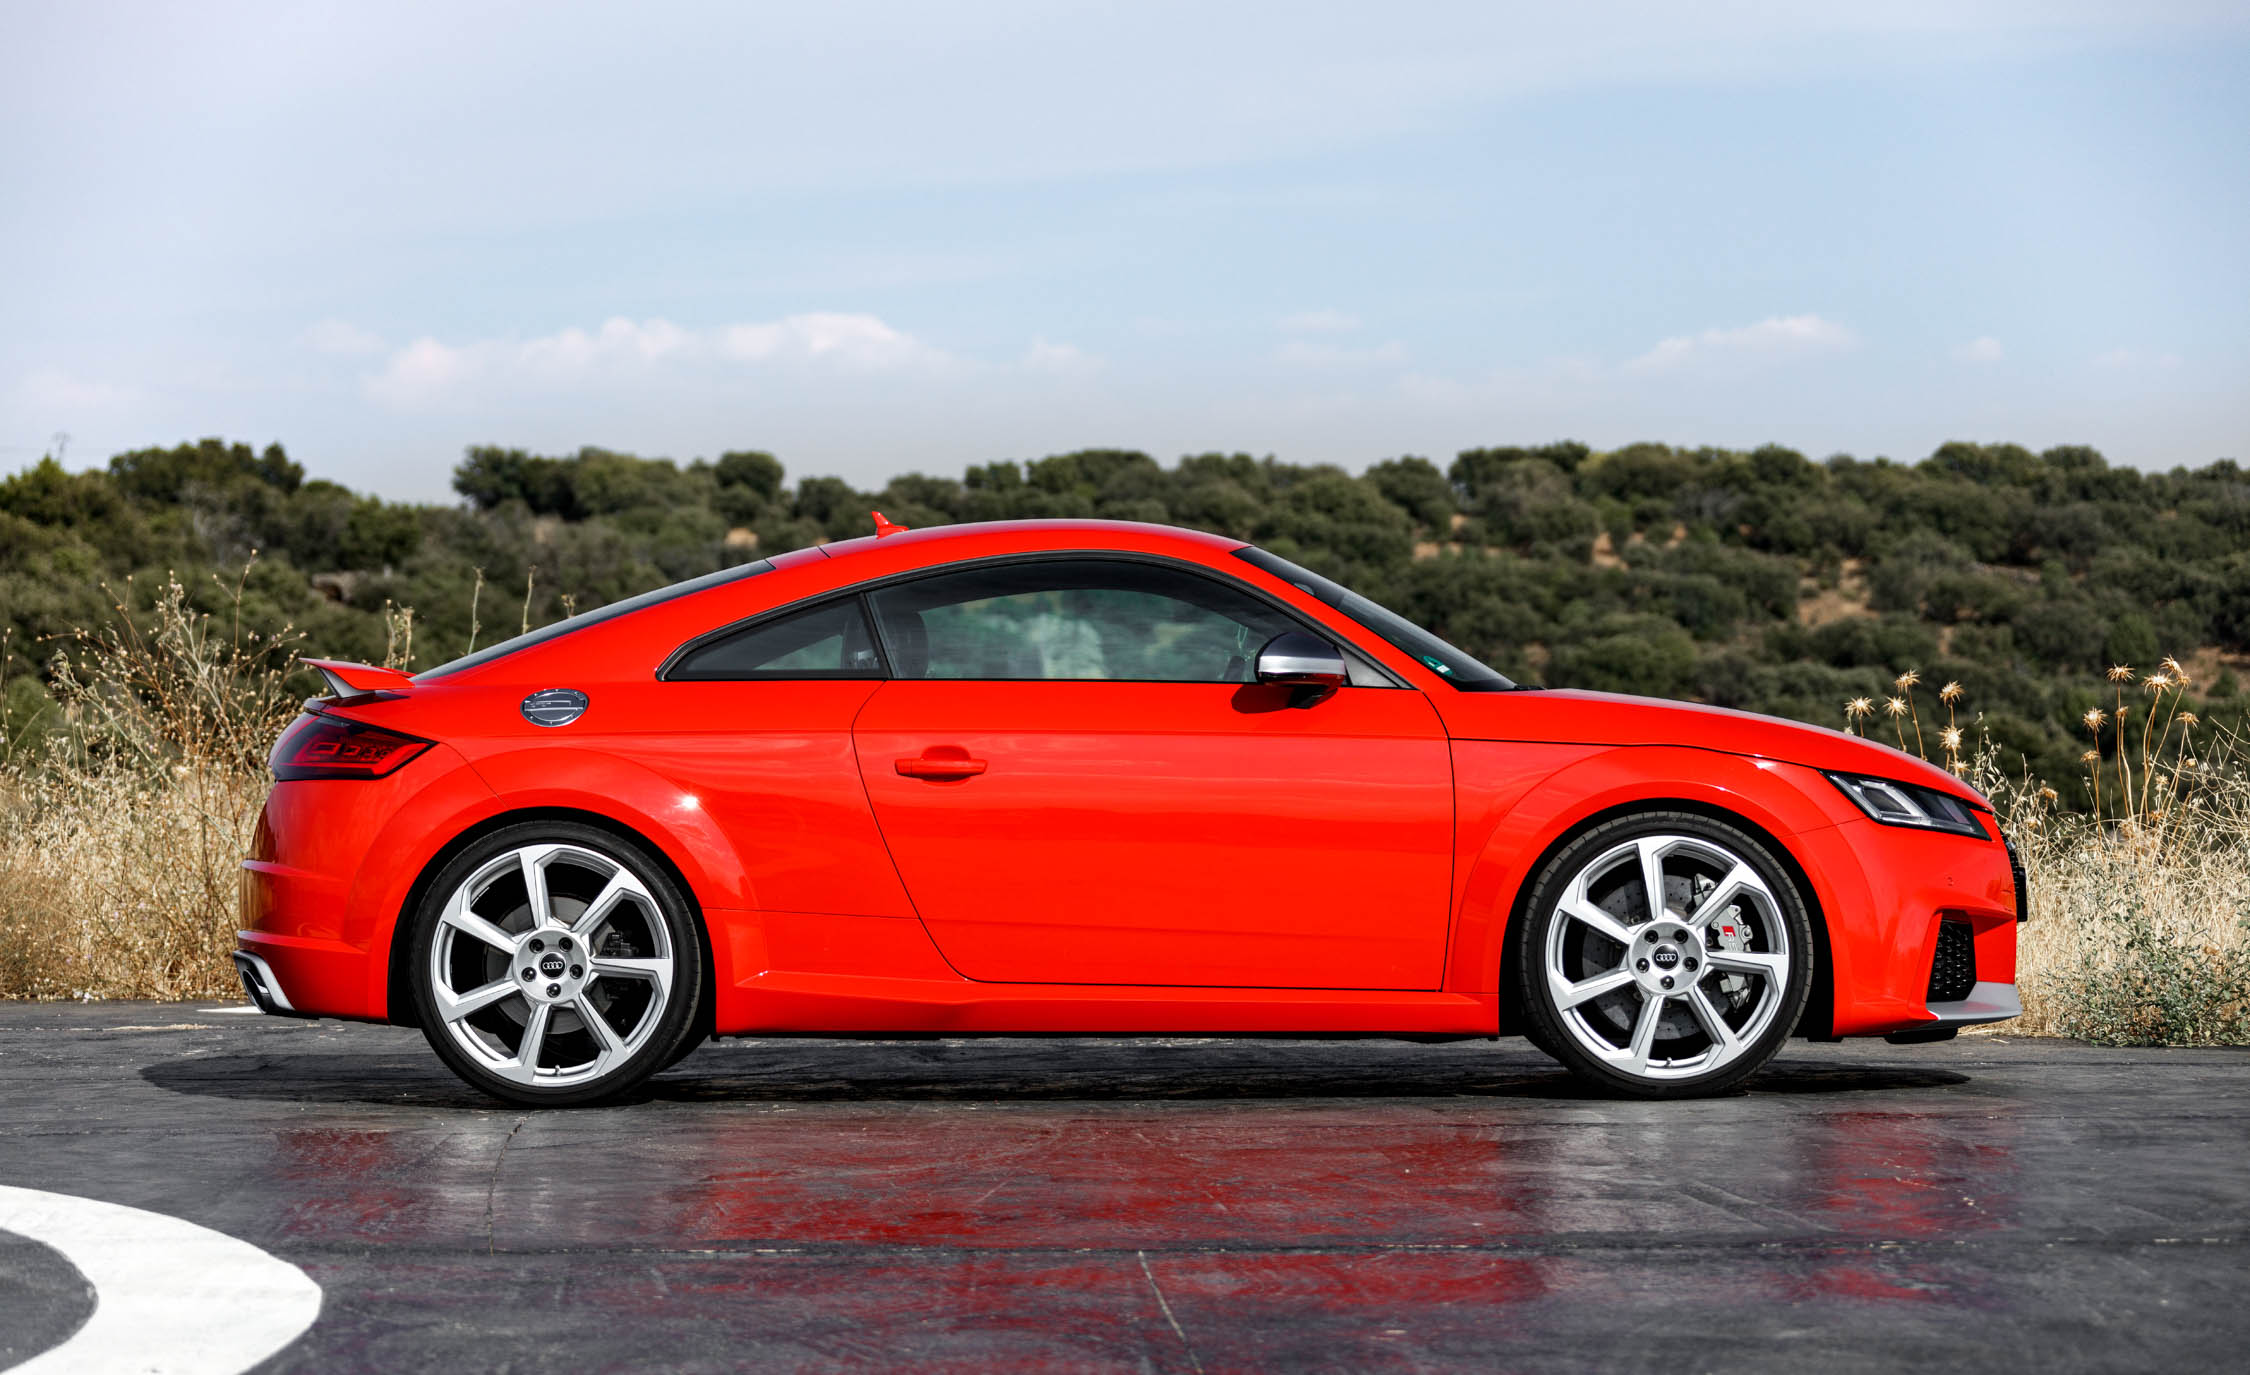 2017 Audi TT RS Coupe (View 8 of 34)